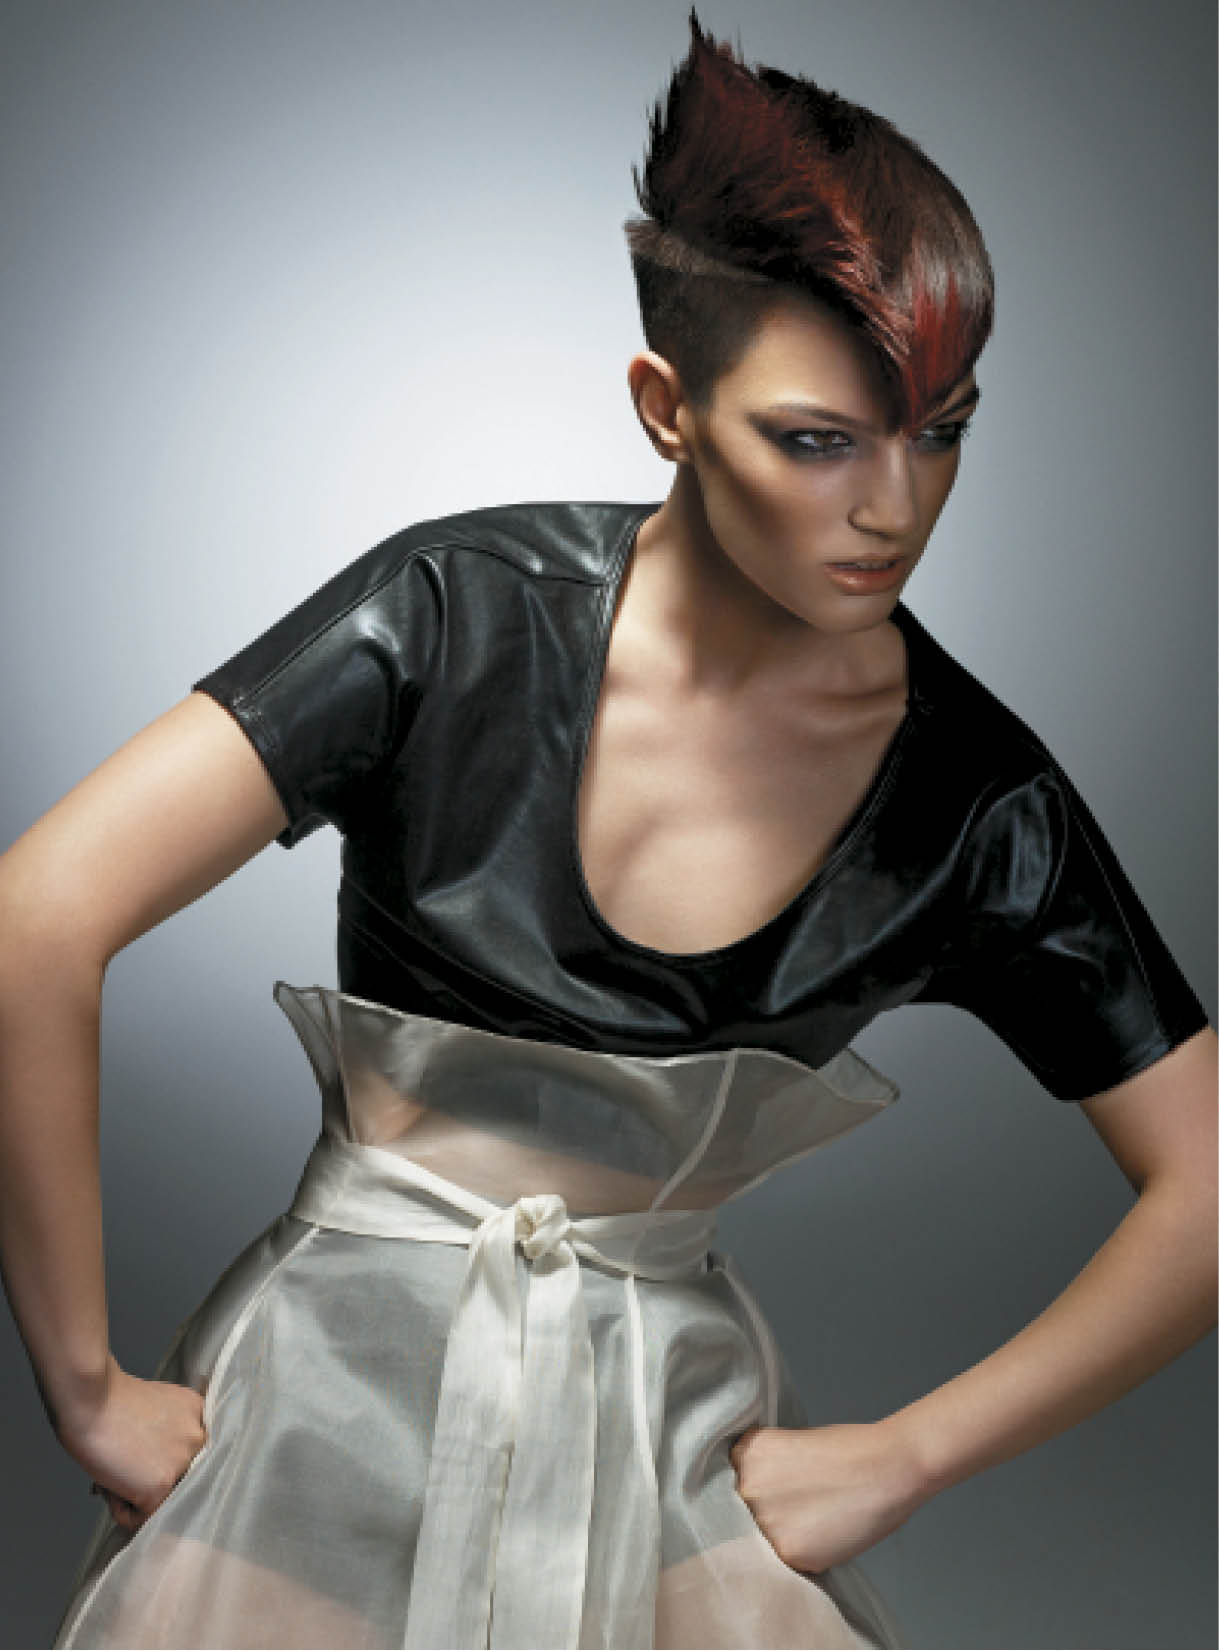 Baek used a scissors-over-comb method, keeping the hair tight to the skin and making sure to keep a strong weight line on the disconnected area. He colored locks an intense red on top and throughout the spiky area and the fringe. For styling, Baek used Tecni.Art Volume Lift, and added Tecni.Art Air Fix and Crystal Gloss while blow-drying to finish the look.